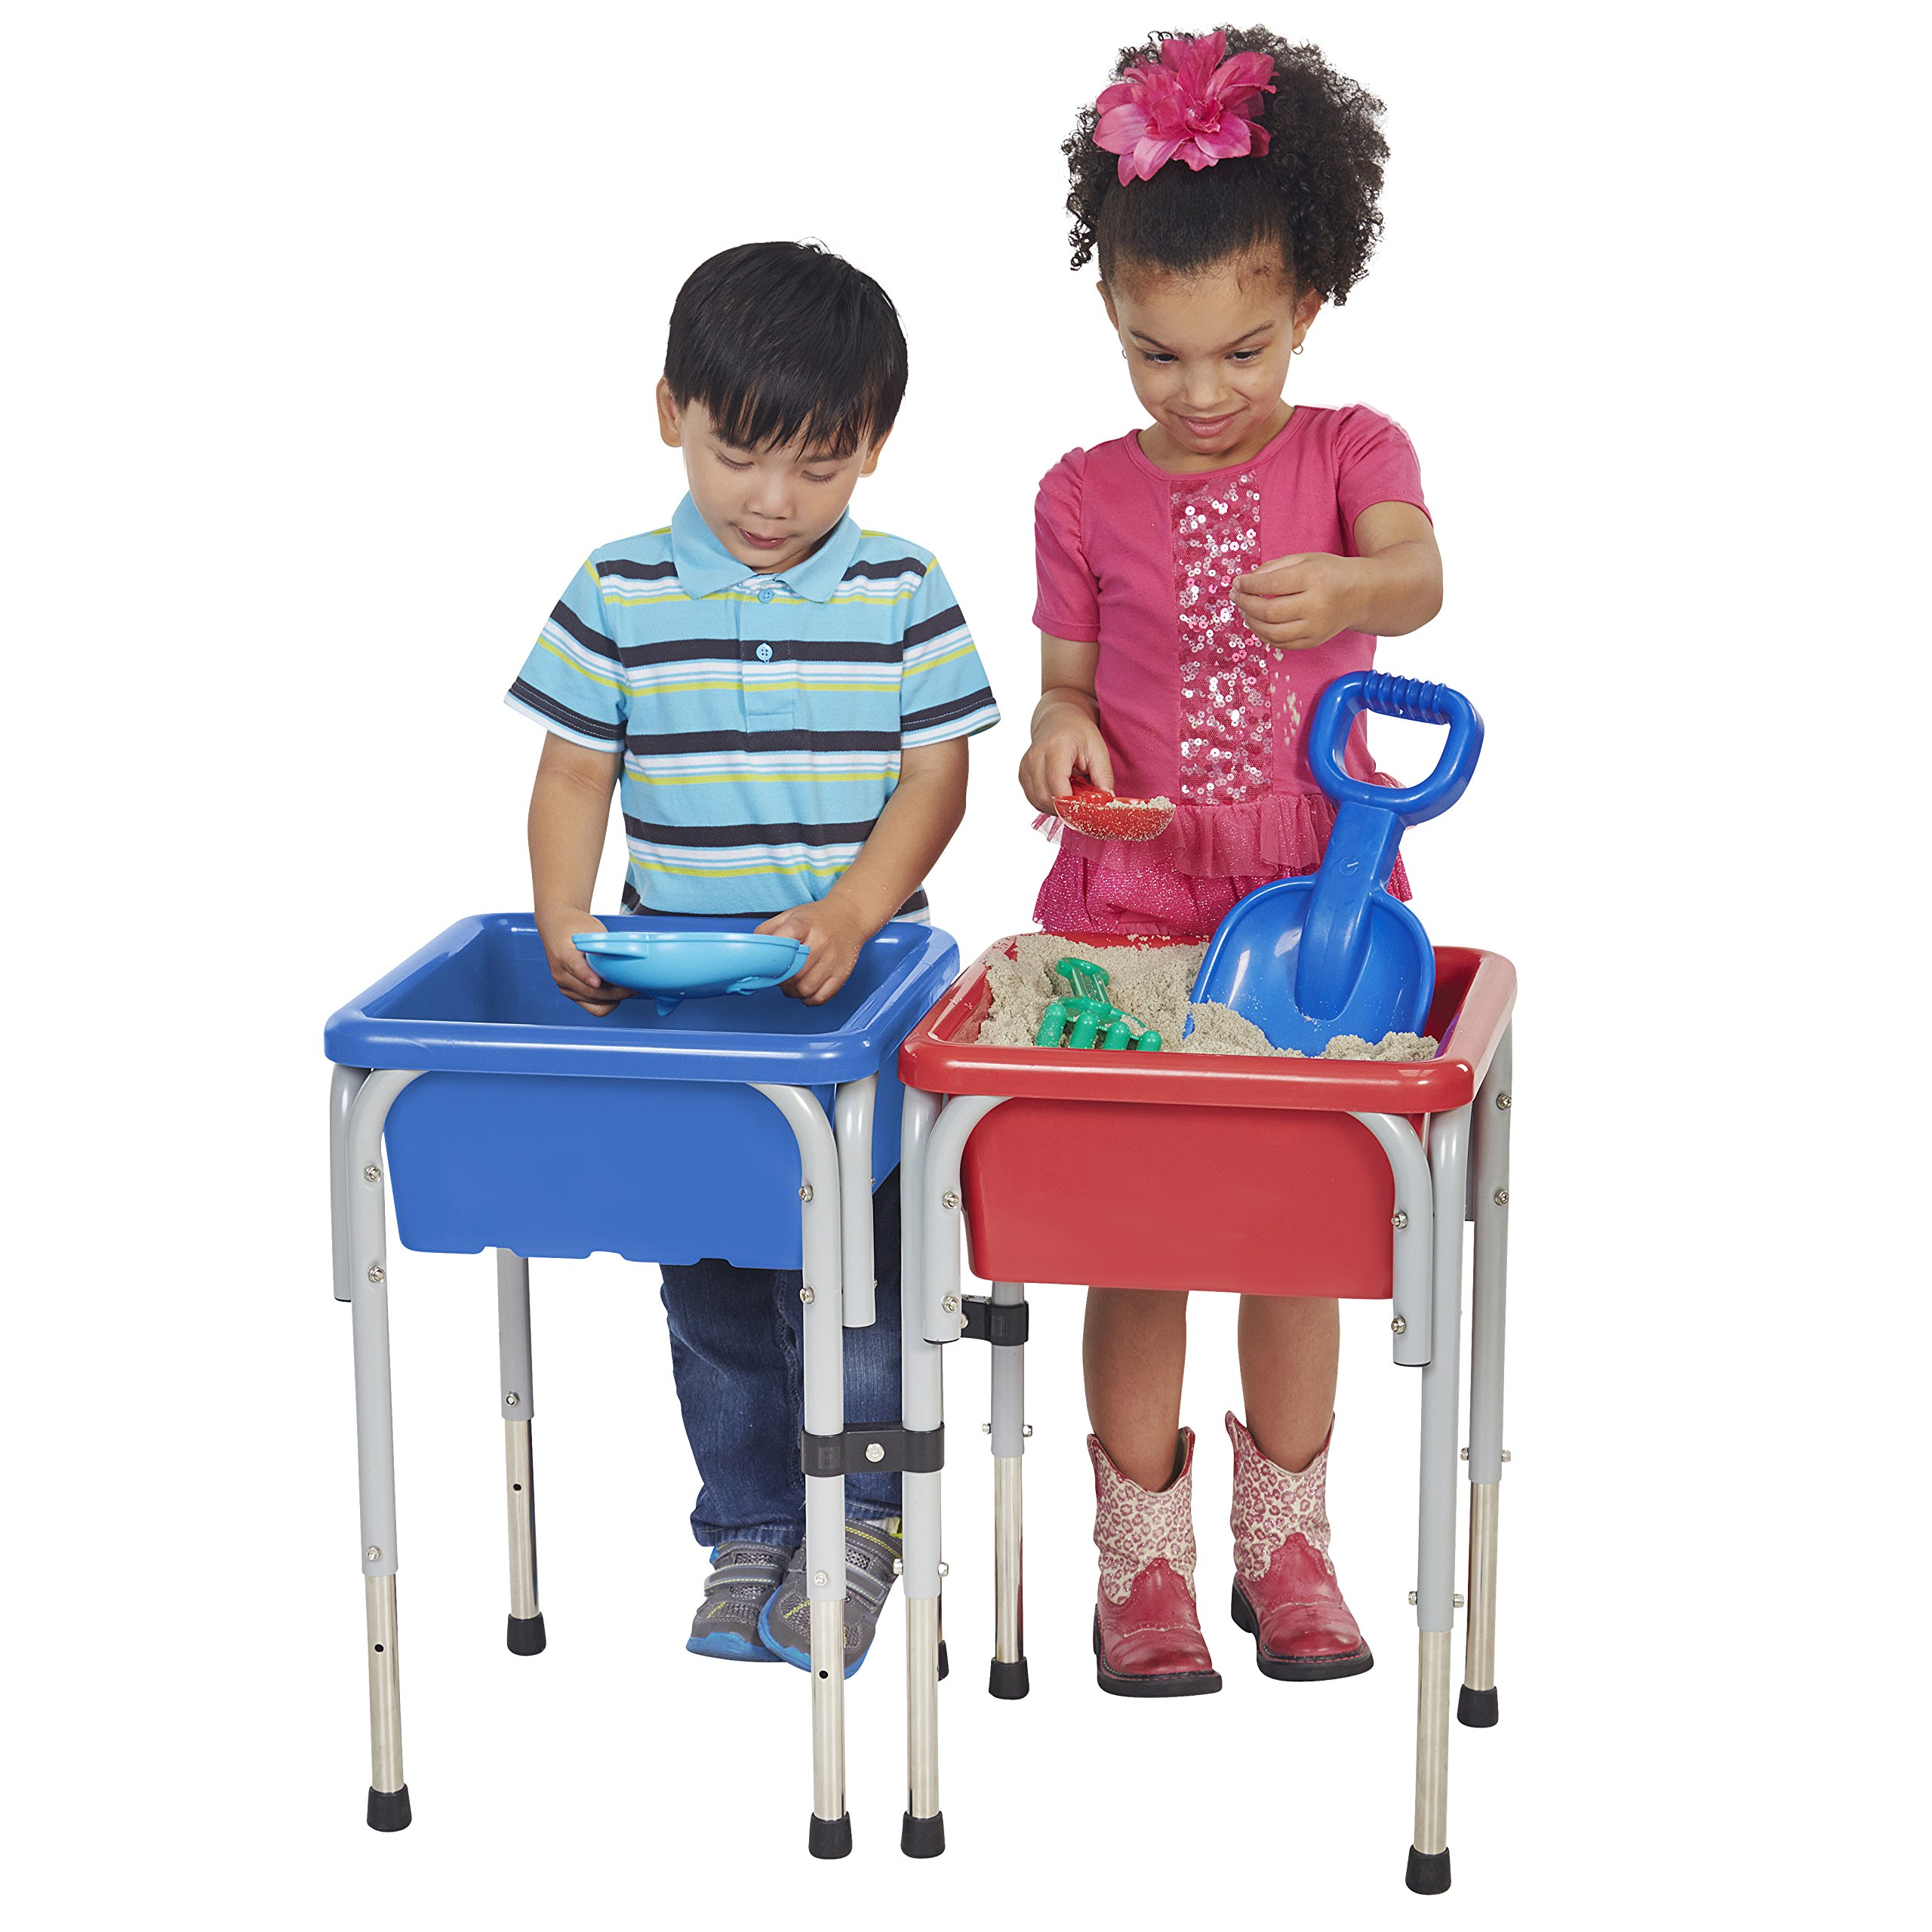 ECR4Kids ELR-12401  Assorted Colors Sand and Water Adjustable Activity Play Table Center with Lids, Square (2-Station) by ECR4Kids